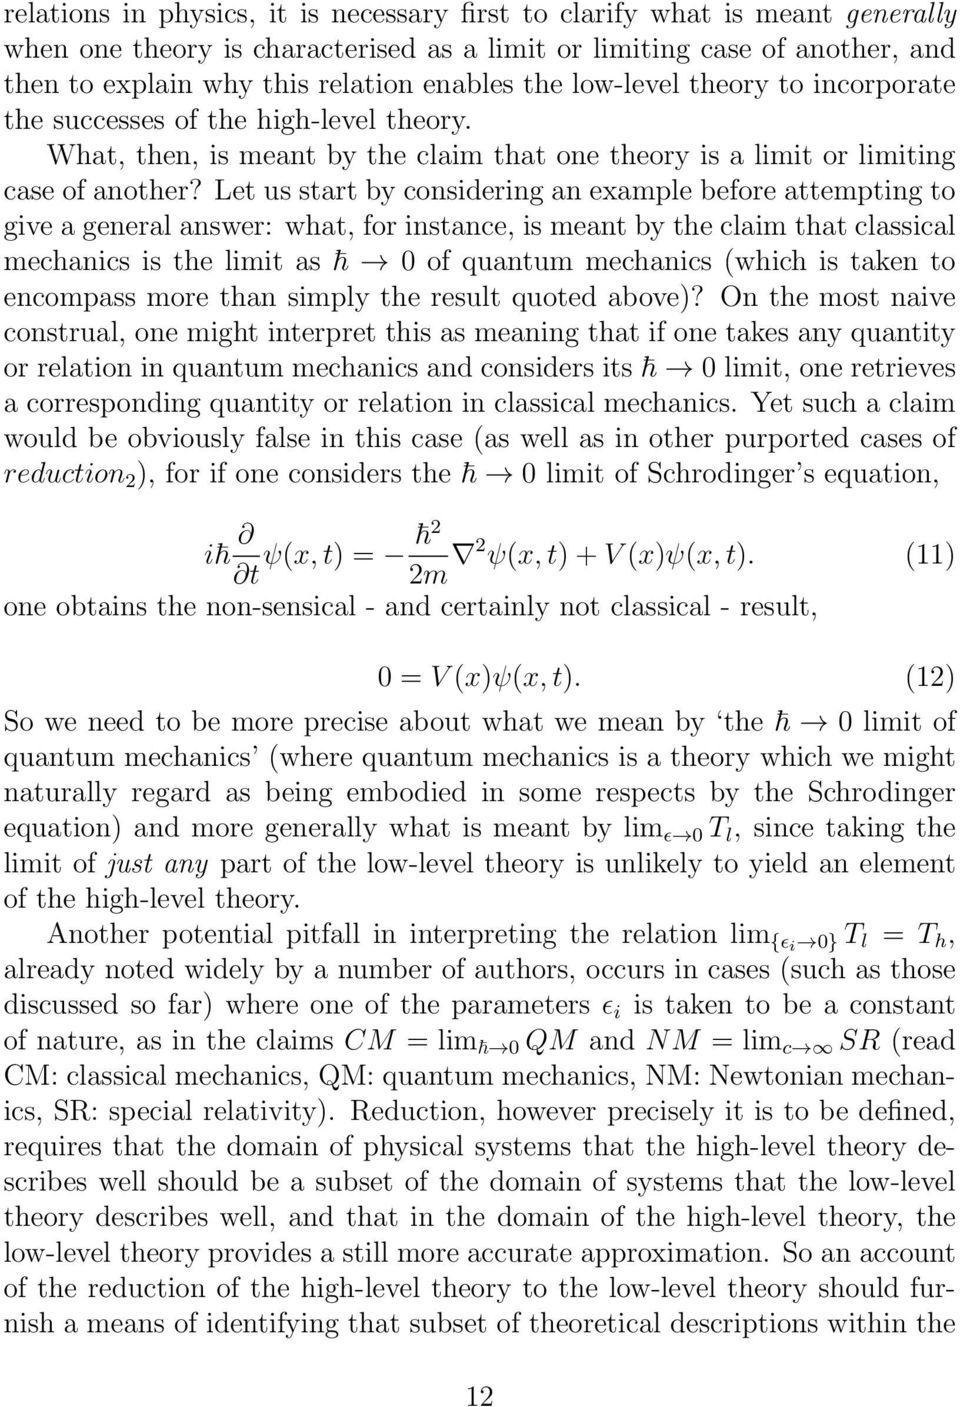 Let us start by considering an example before attempting to give a general answer: what, for instance, is meant by the claim that classical mechanics is the limit as 0 of quantum mechanics (which is